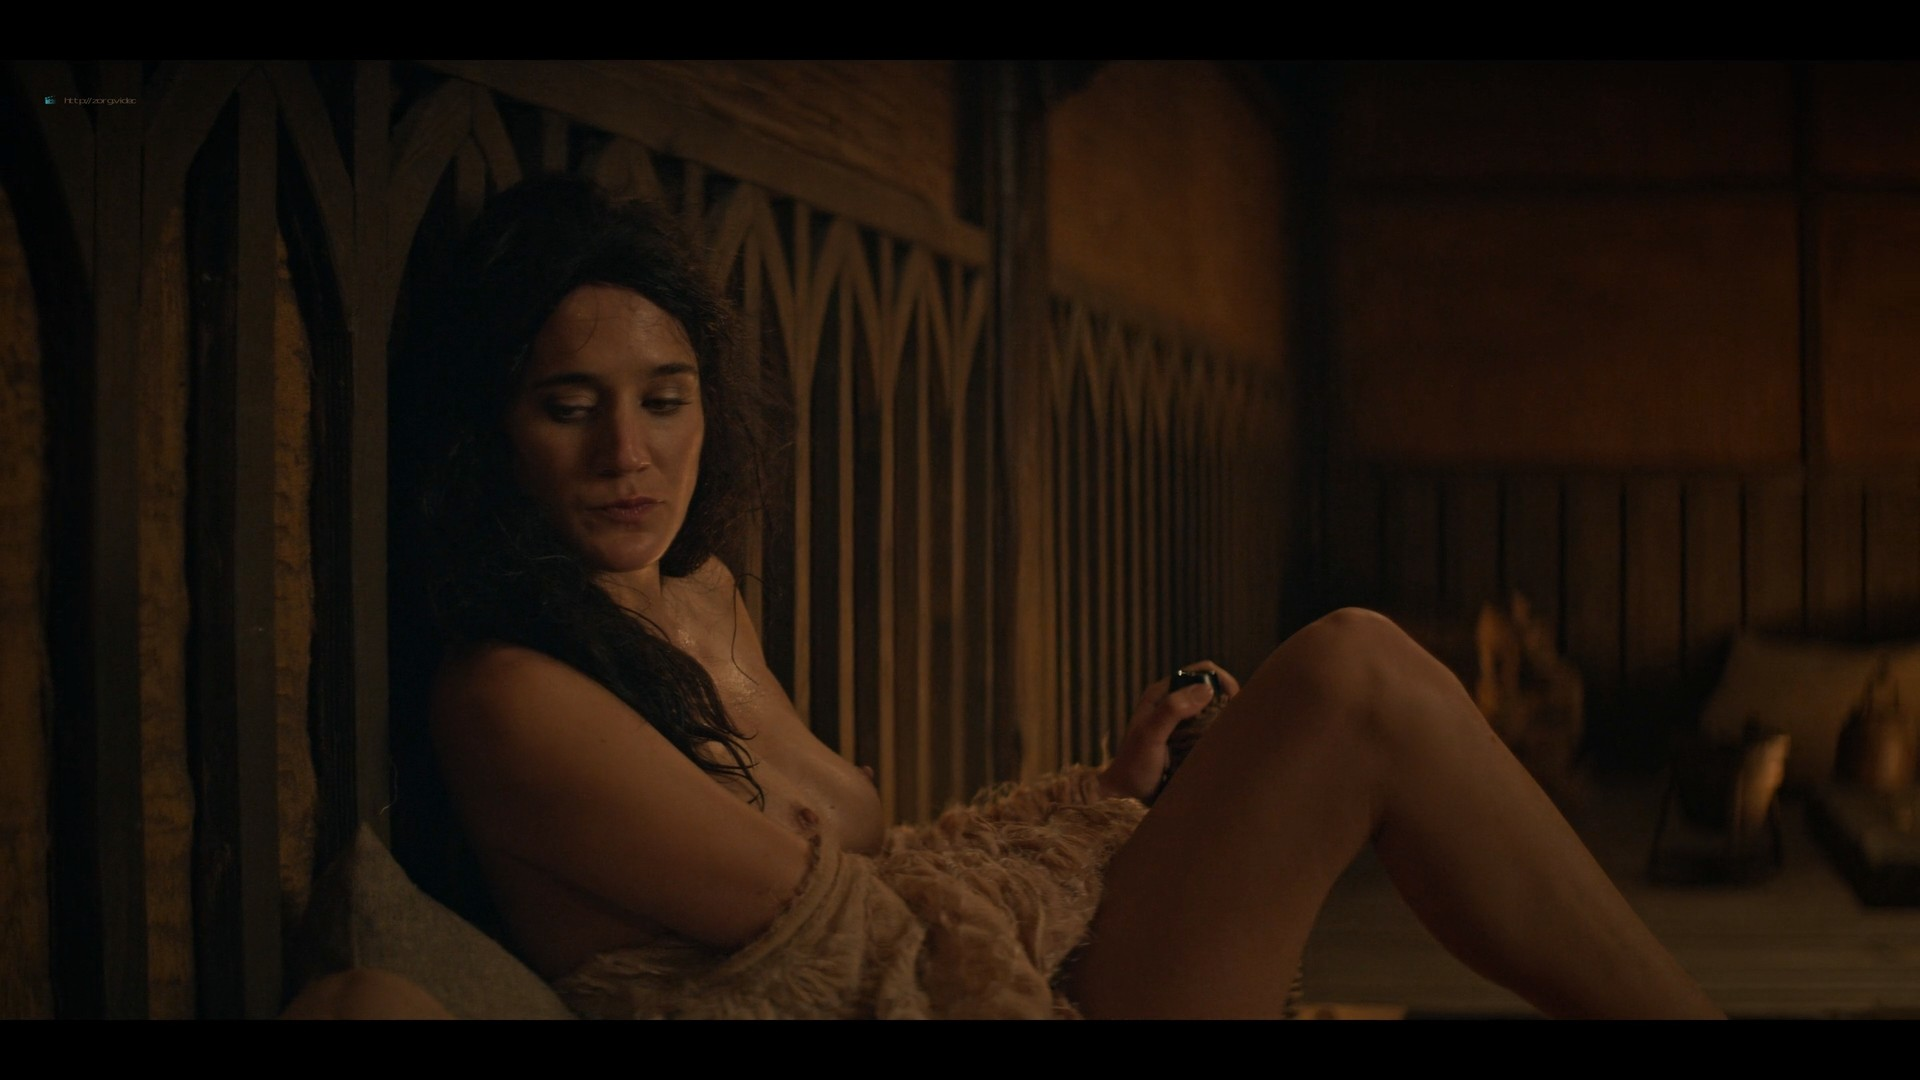 Anya Chalotra nude sex others nude too - The Witcher (2019) s1e1-3 HD 1080p WEB-DL (12)